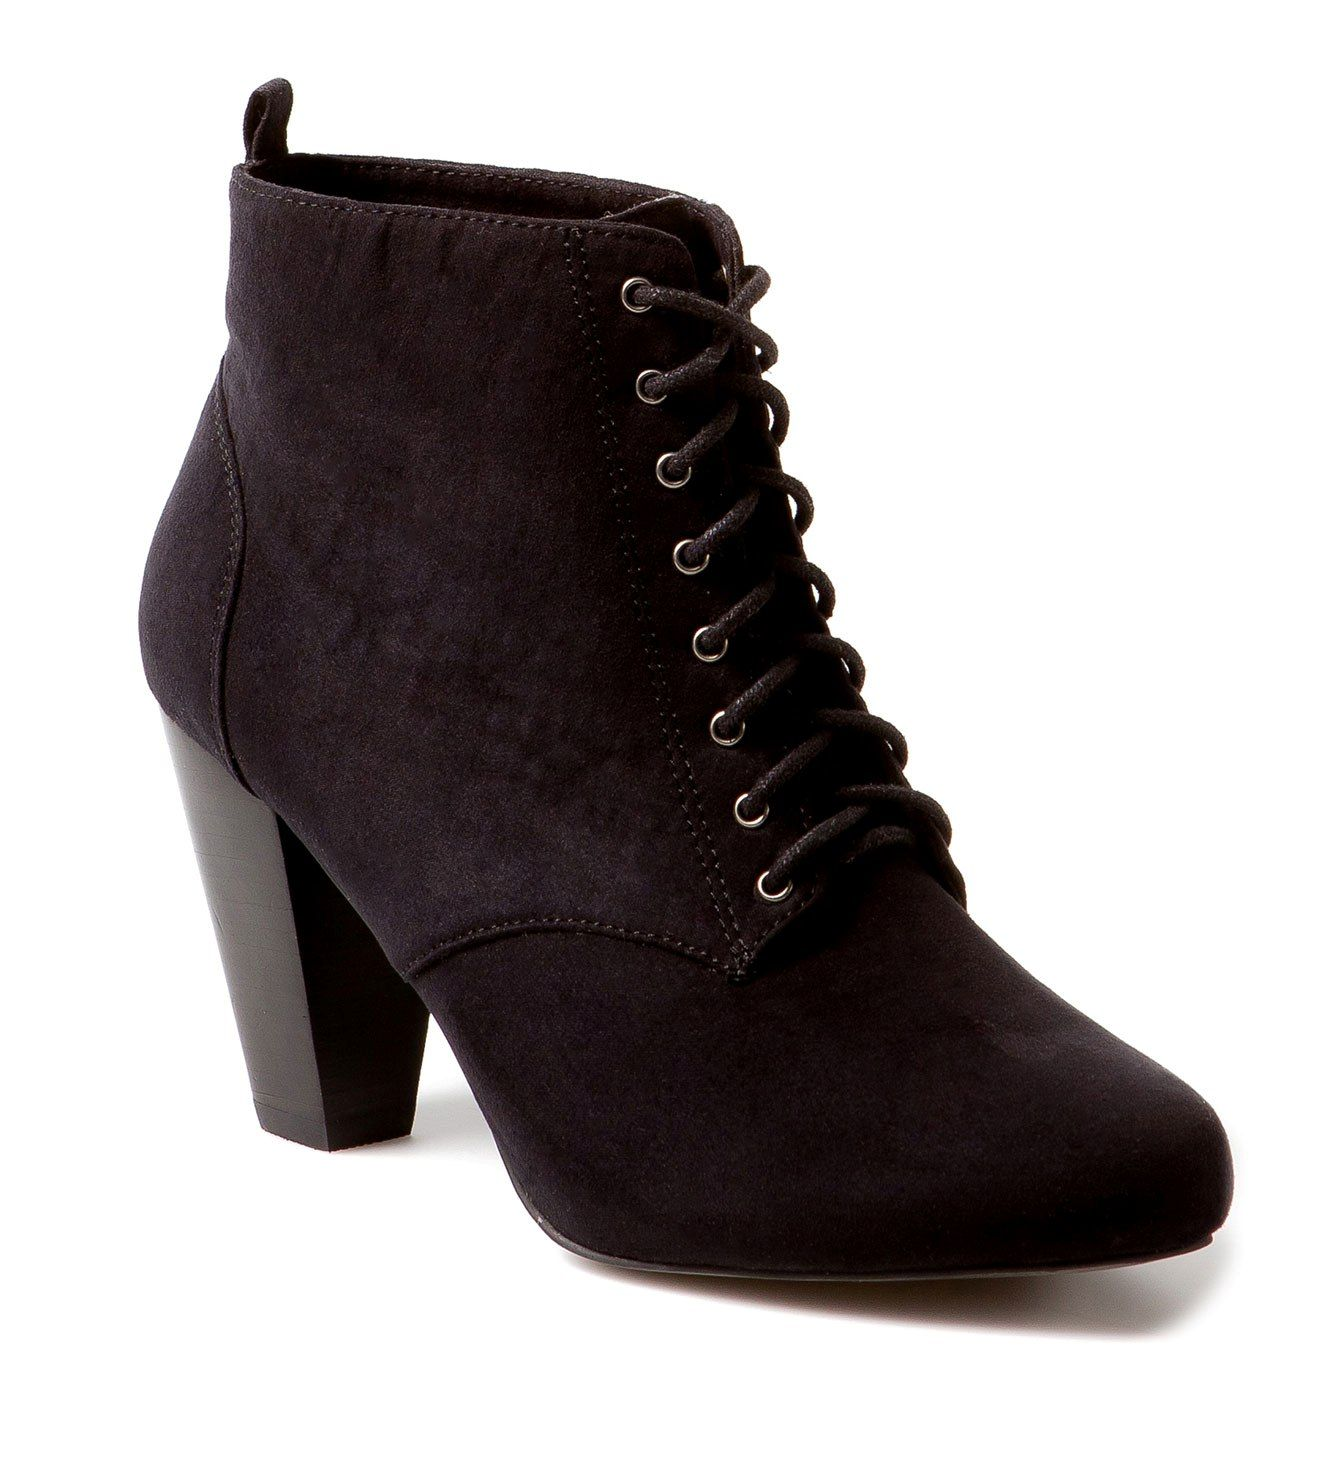 Lace Up Ankle Boots | Pull & Bear heeled lace-up ankle boots. AED ...